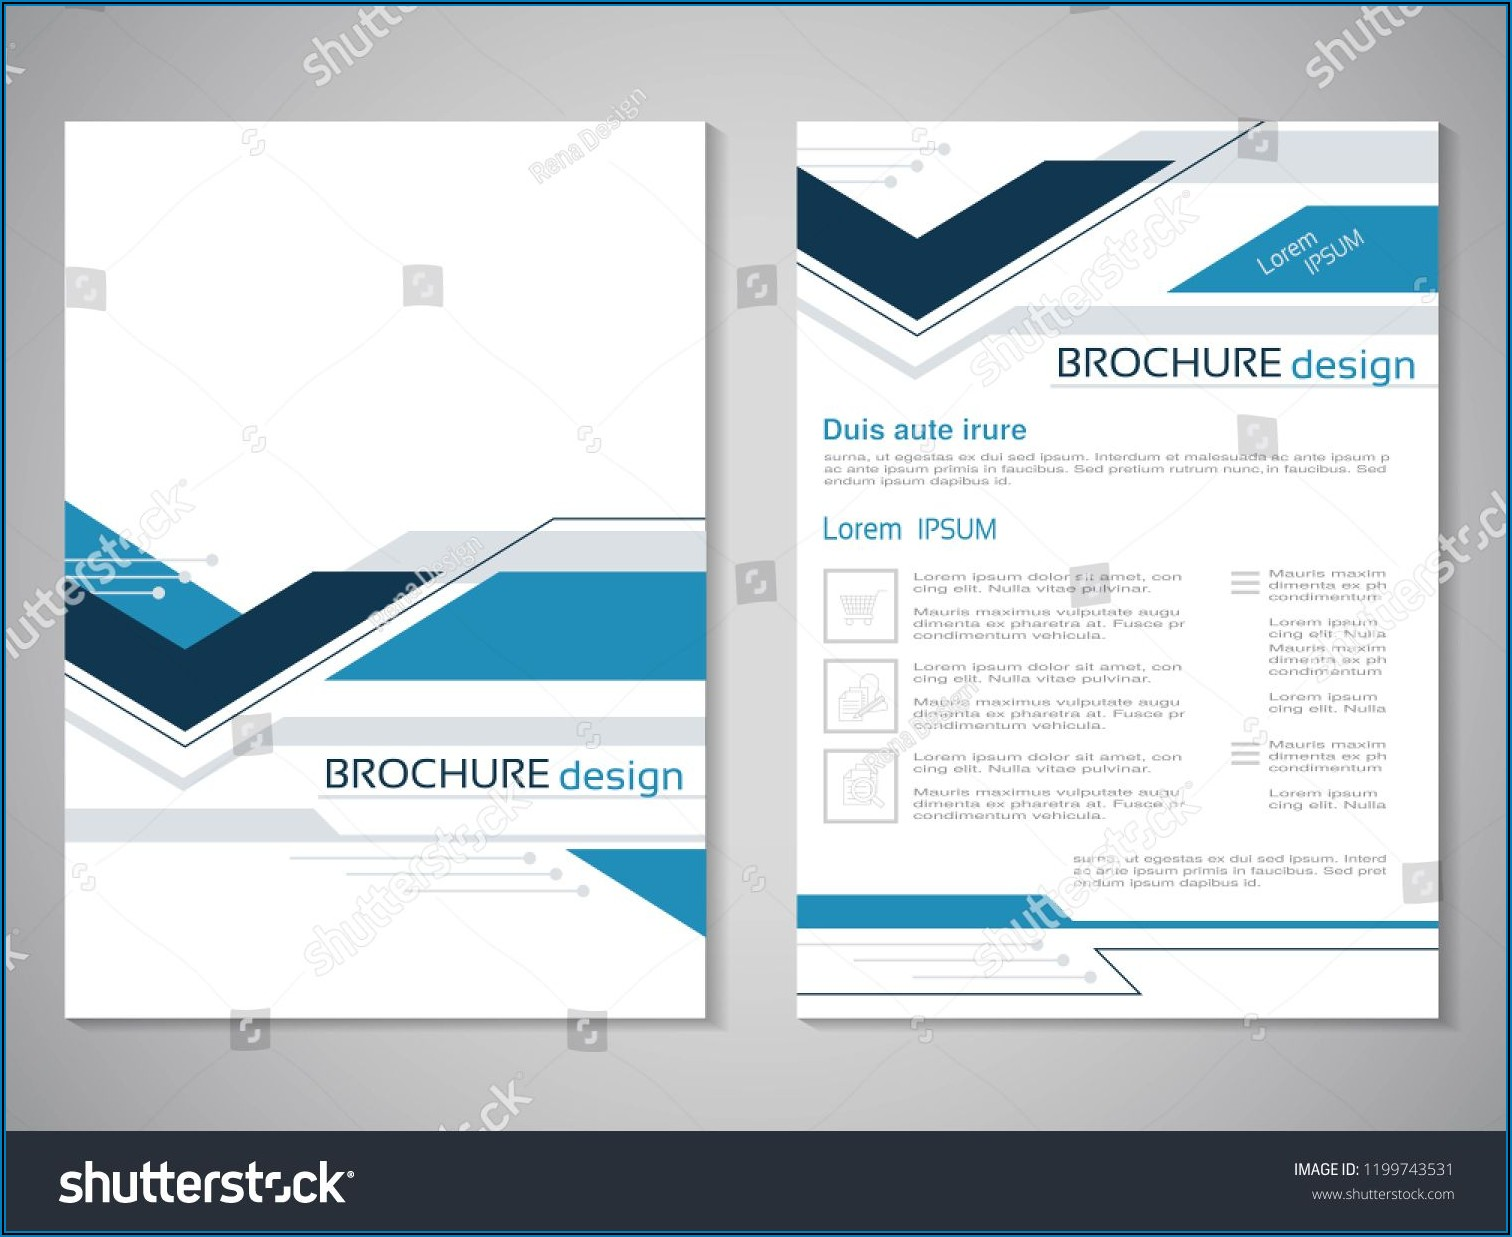 Brochure Design Background Vector